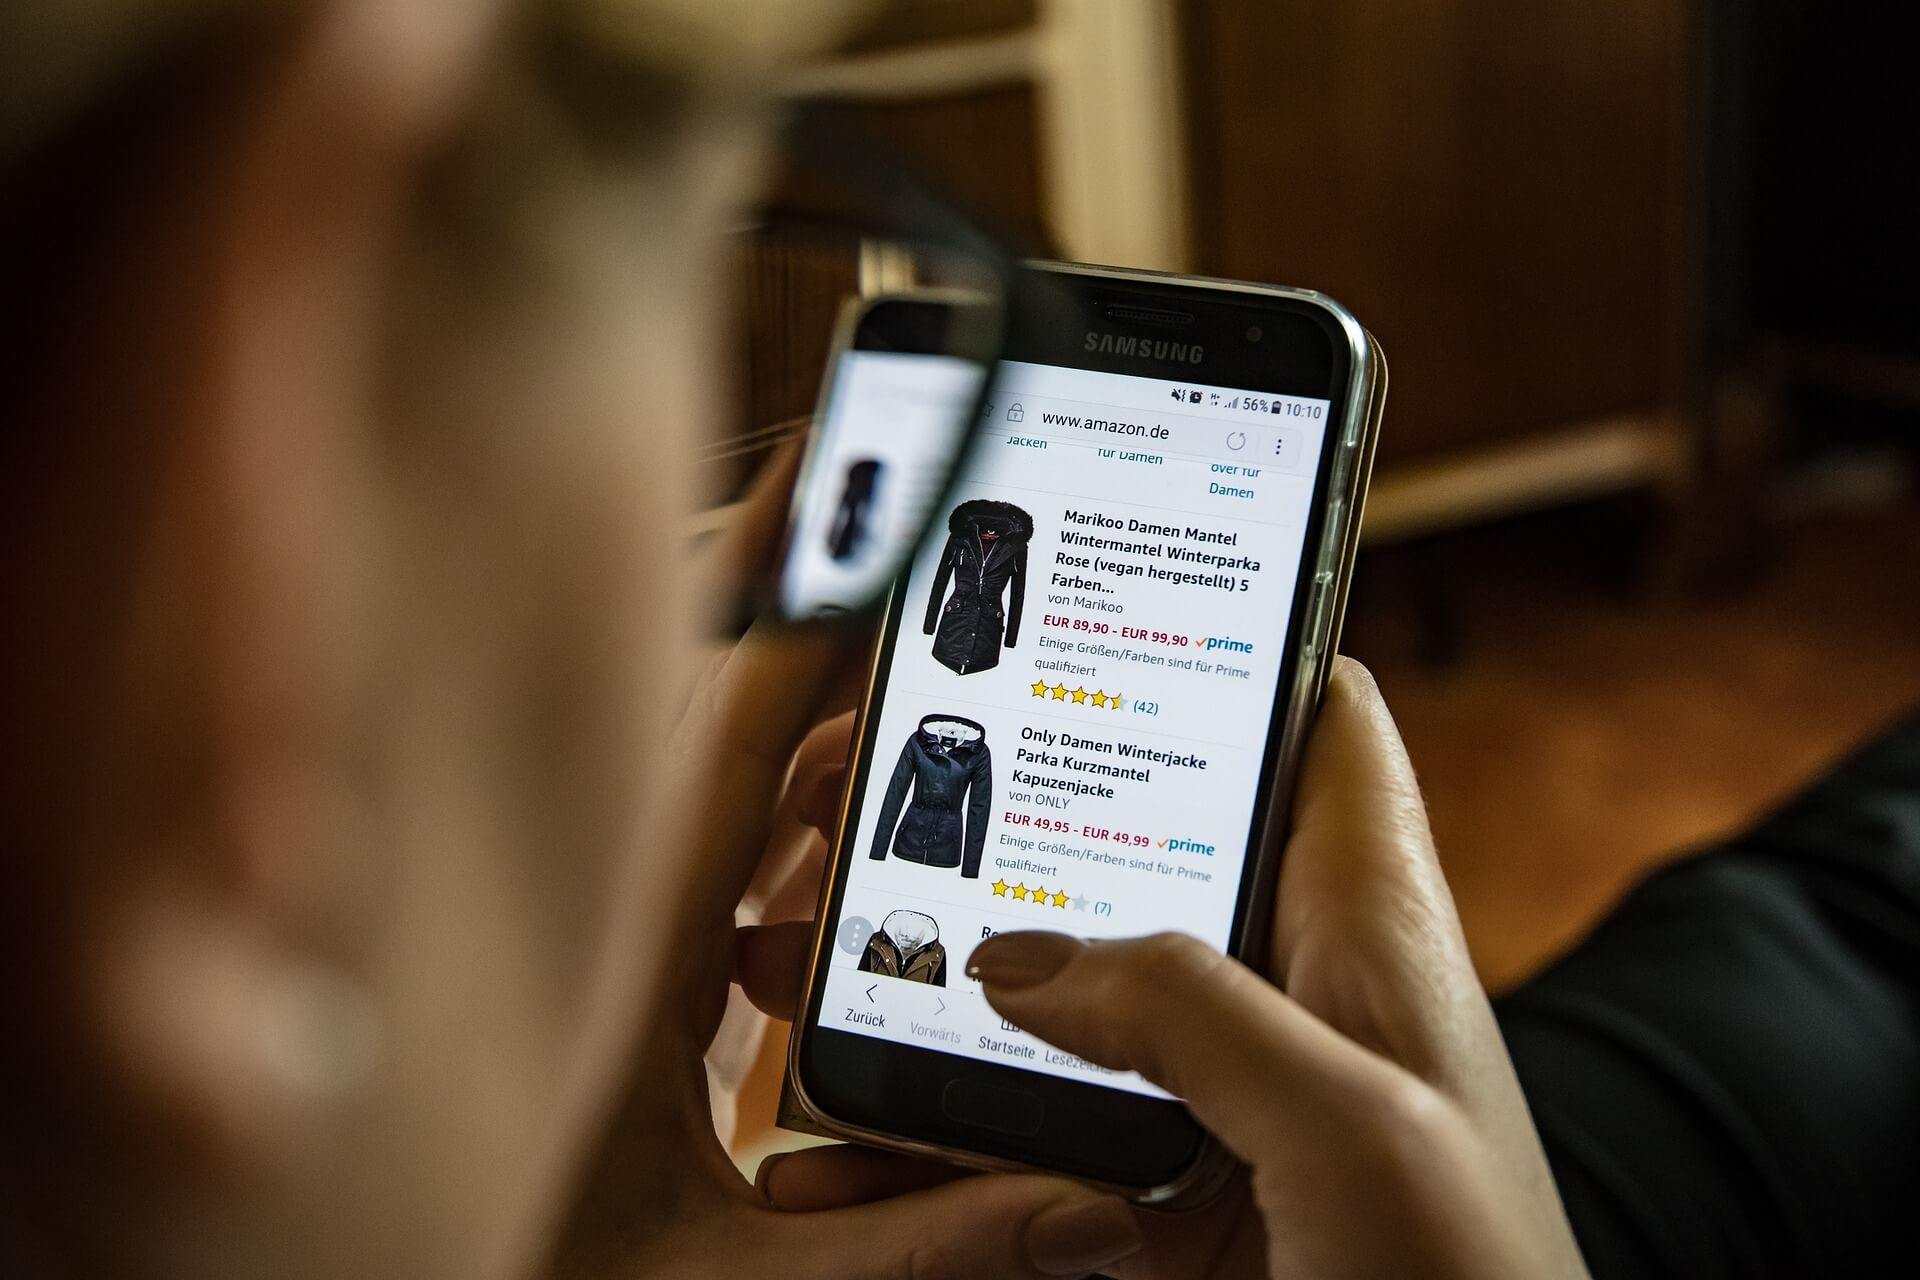 Amazon is helping merchants cash in on mobile commerce